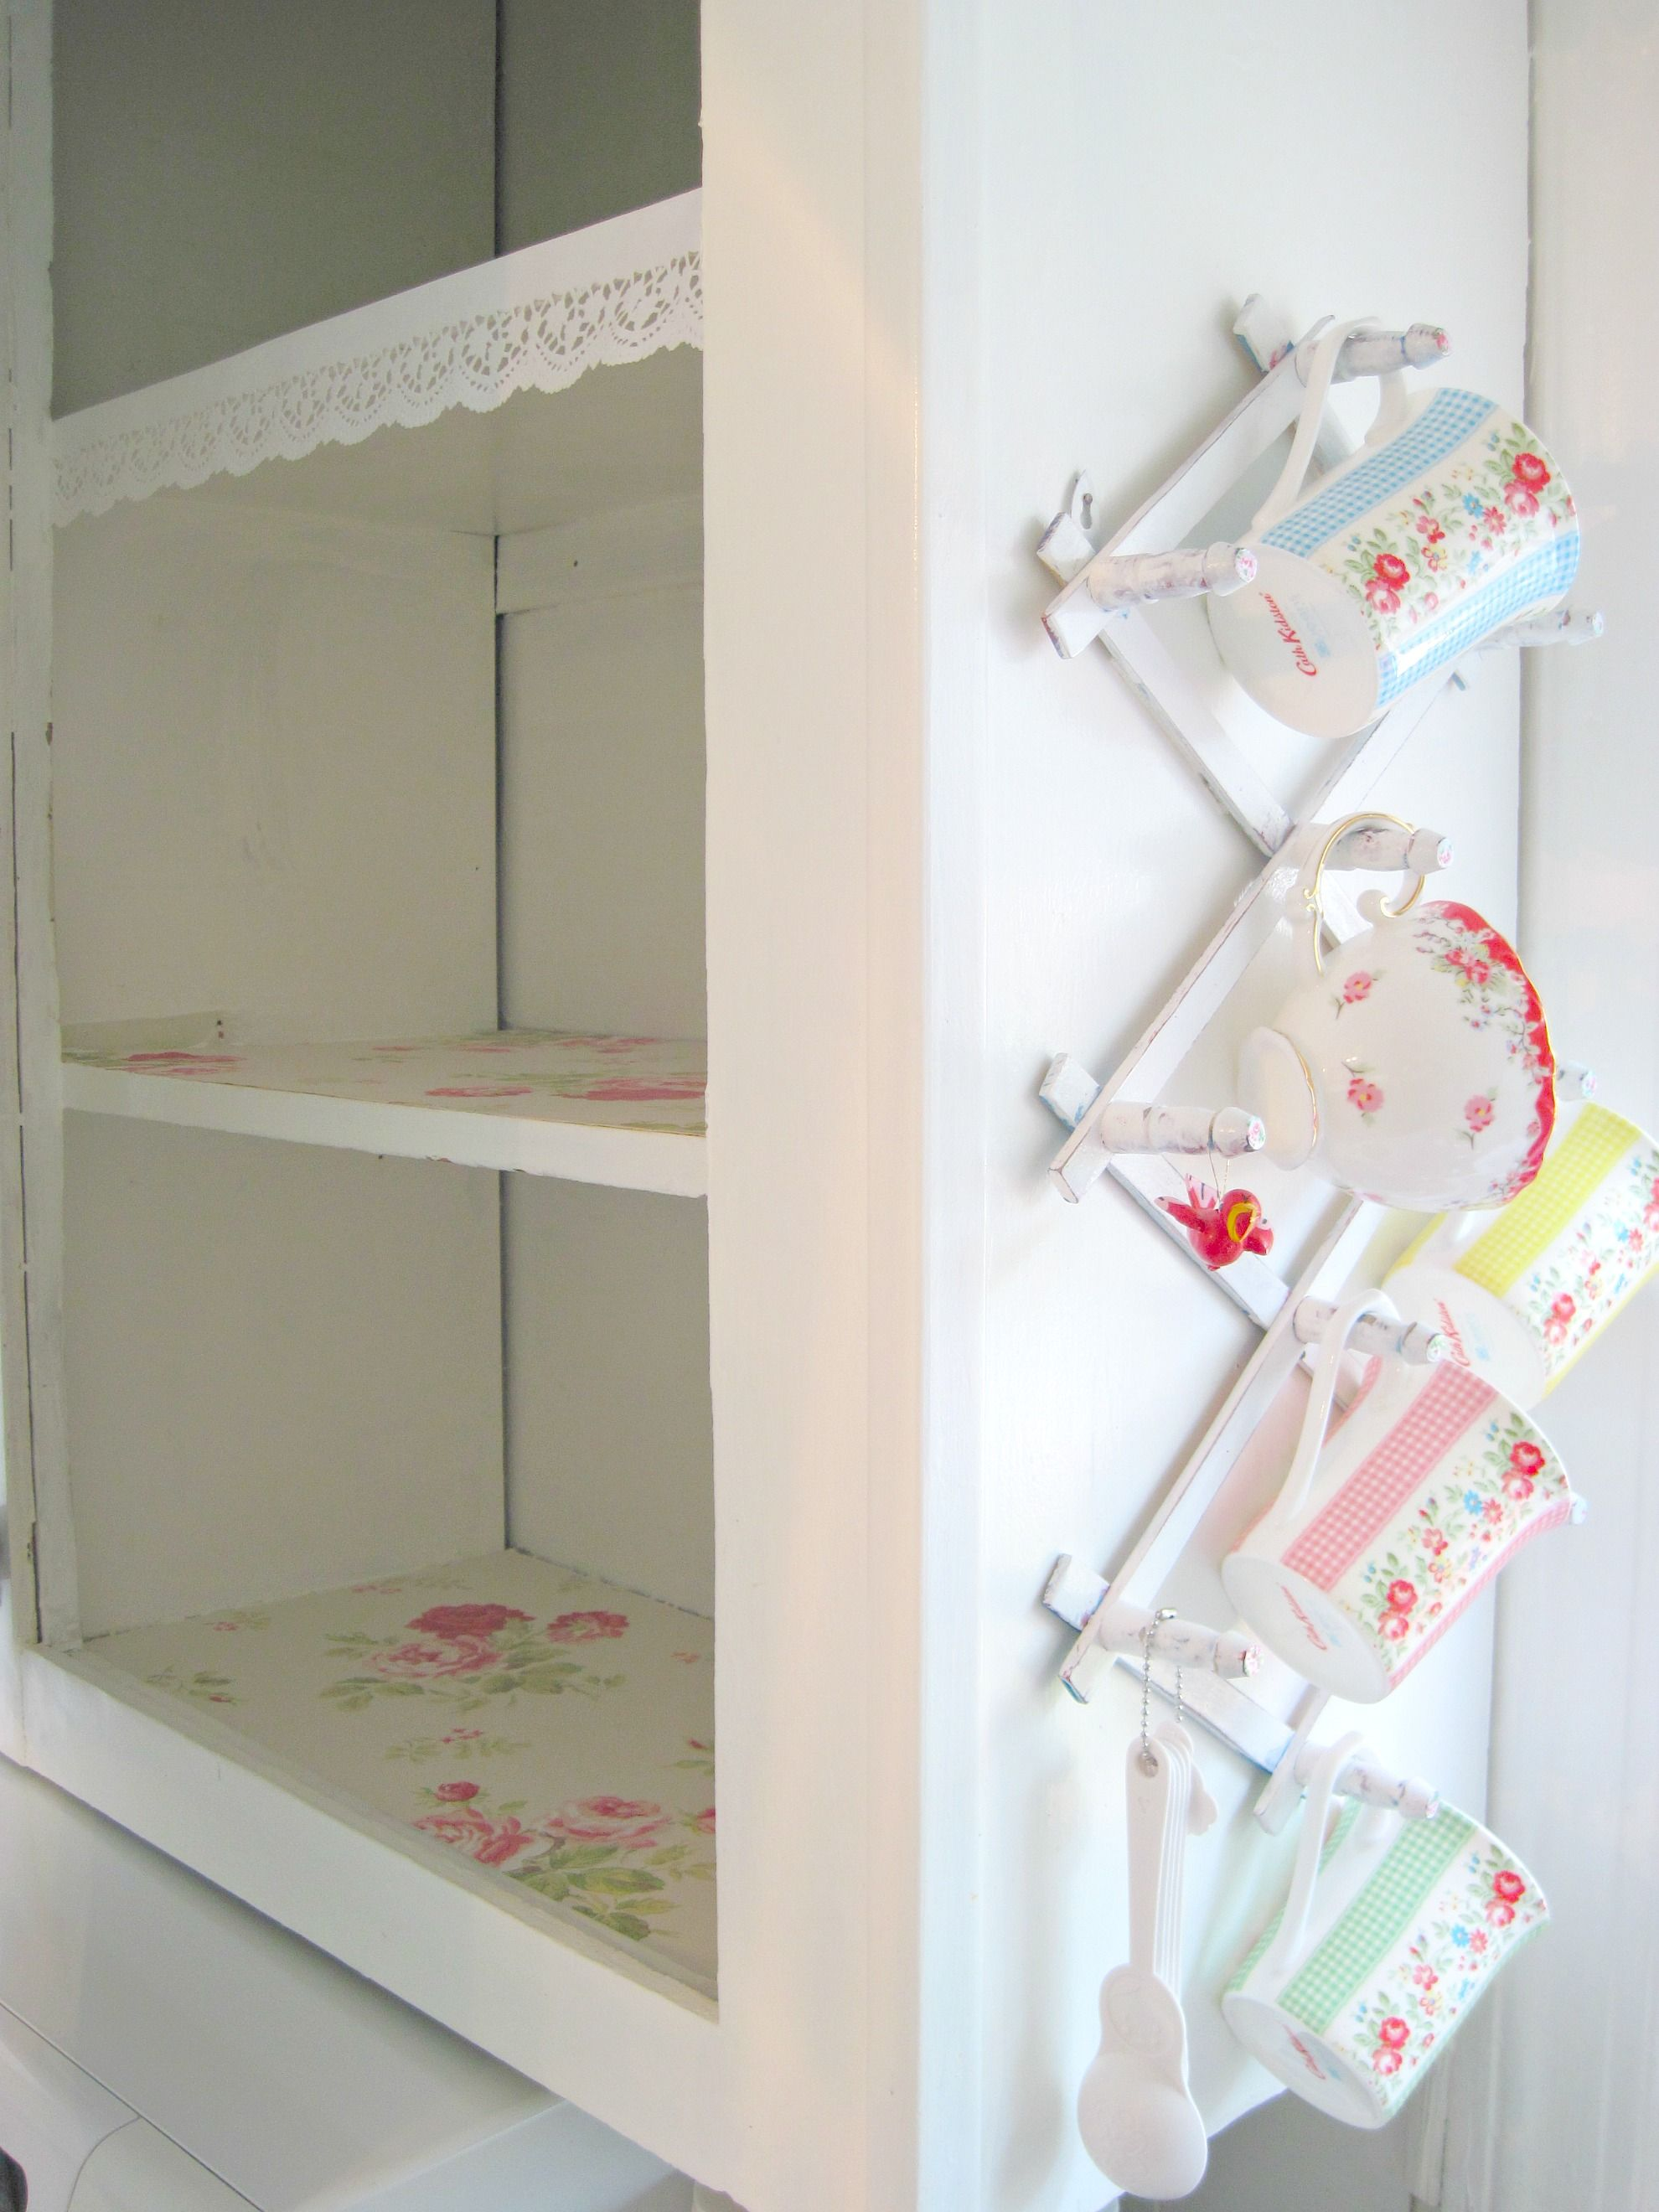 cath kidston wallpaper as shelf liner